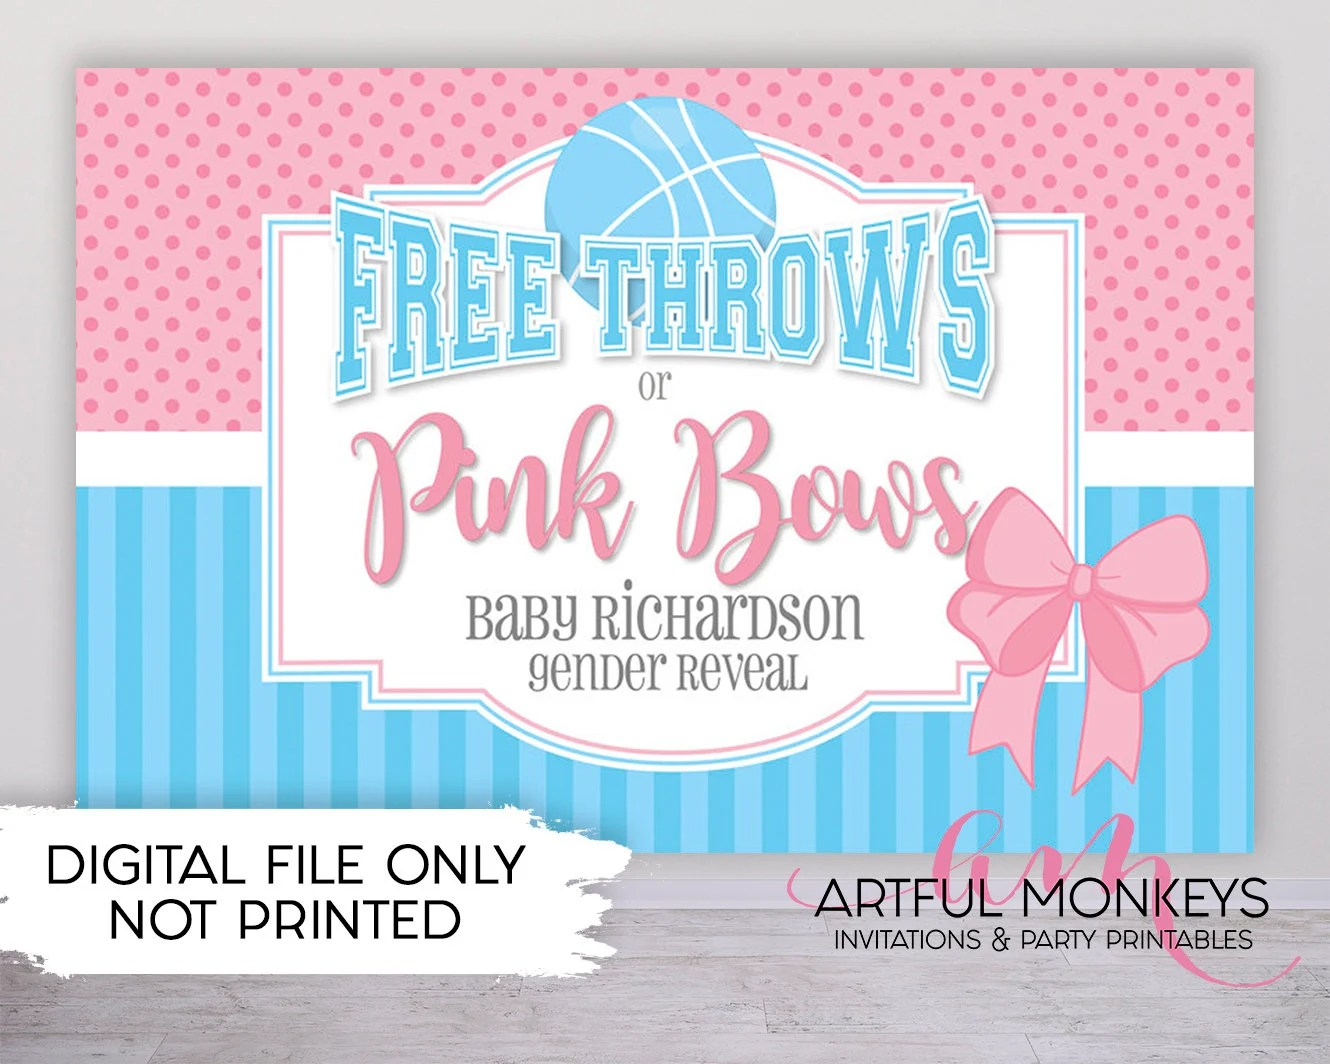 Digital Printable Free Throws Or Pink Bows Gender Reveal Backdrop Party Banner Poster Signage Personalised